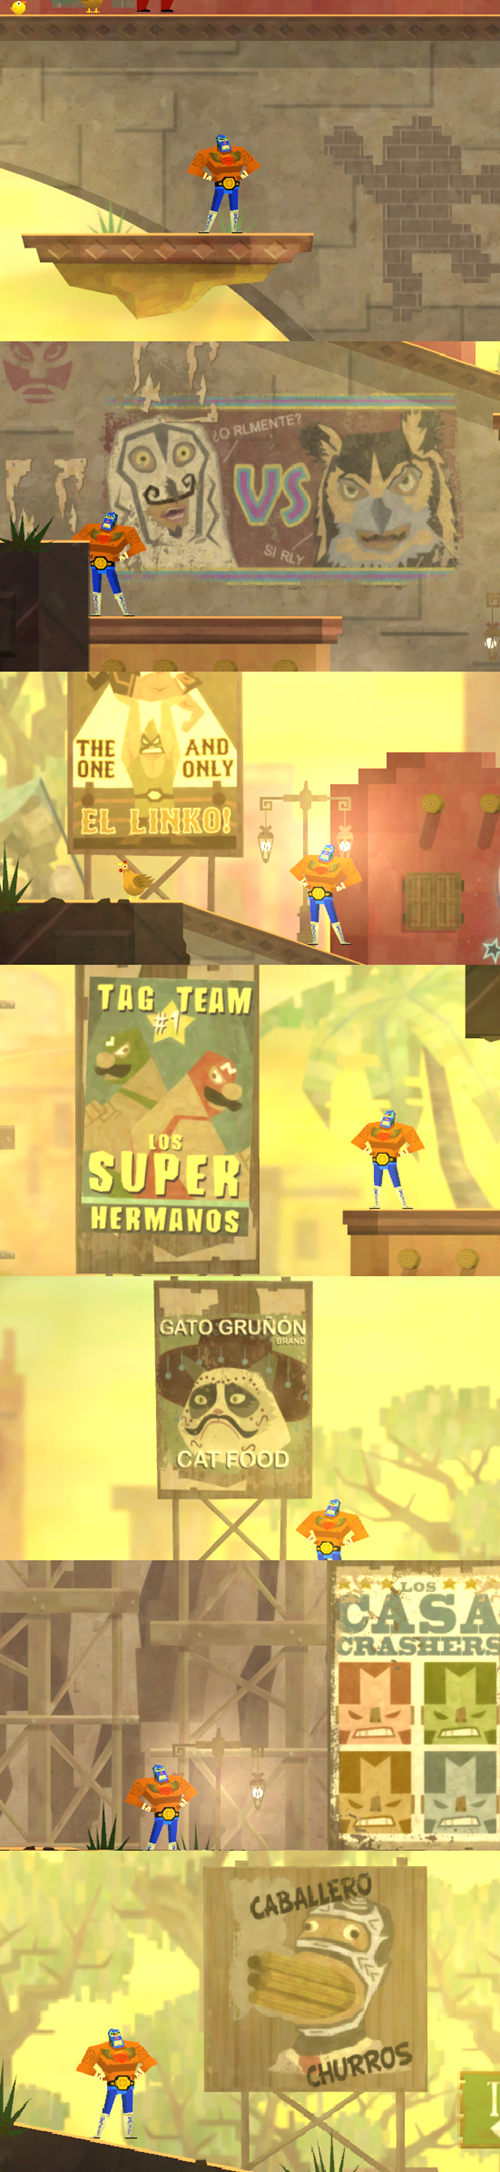 guacamelee,cameos,easter eggs,references